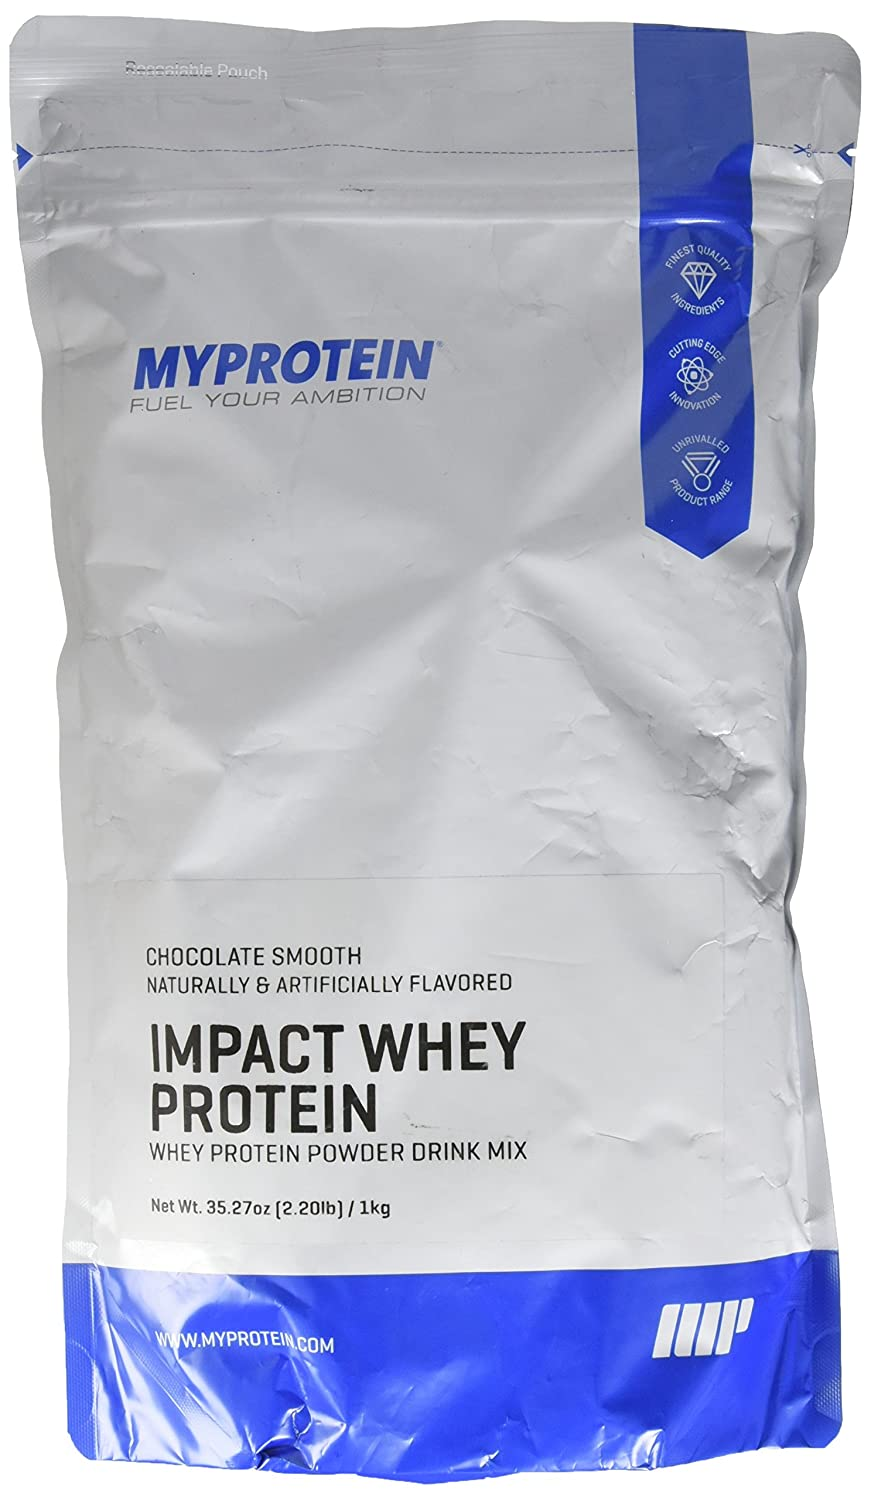 Amazon.com: MyProtein Impact Whey Protein , Mocha Pouch, Size: 2.2lbs: Health & Personal Care